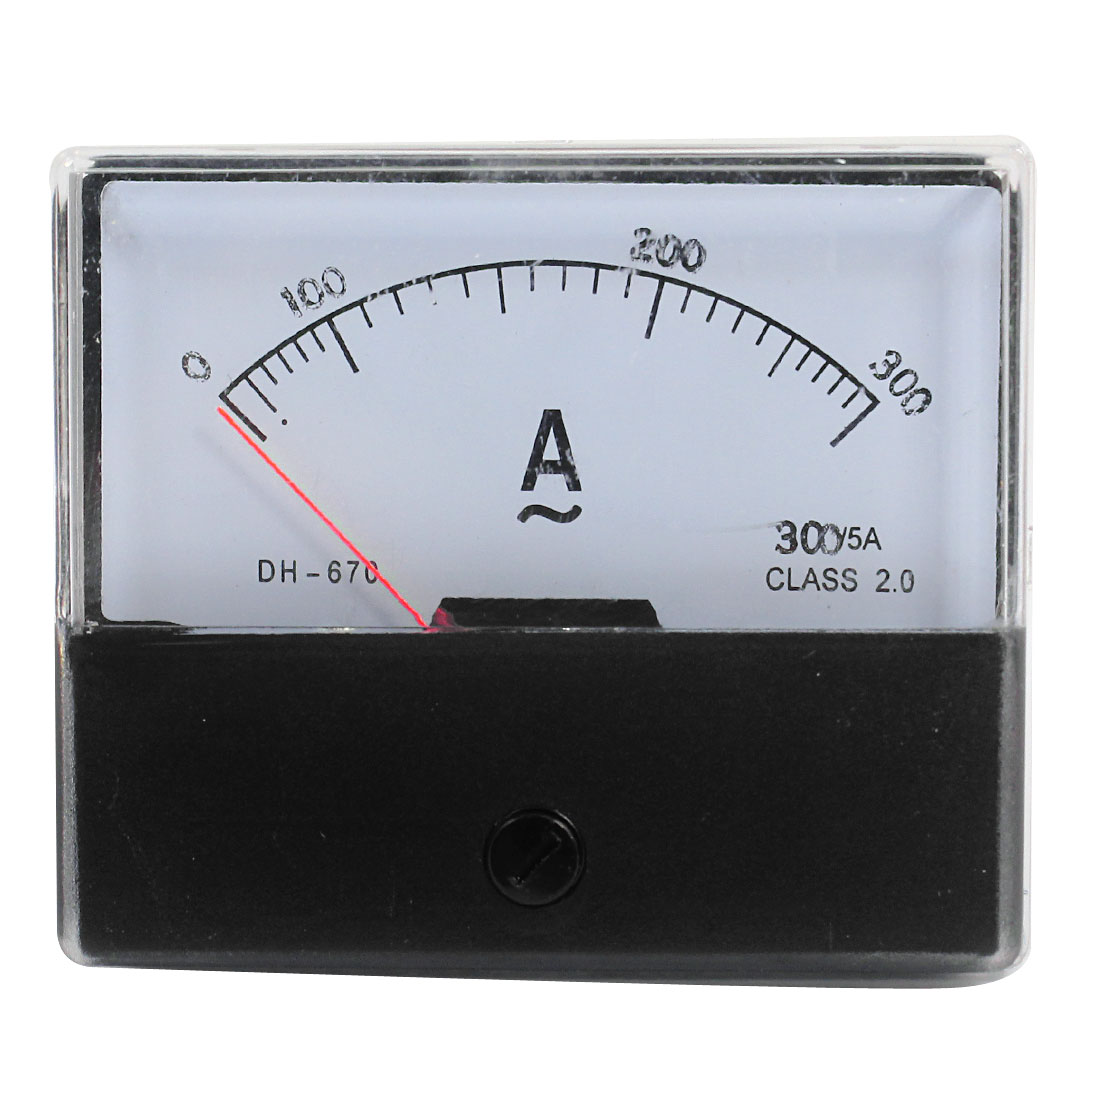 AC 0-300A Fine Tuning Dial Alternating Current Test Panel Meter Ammeter